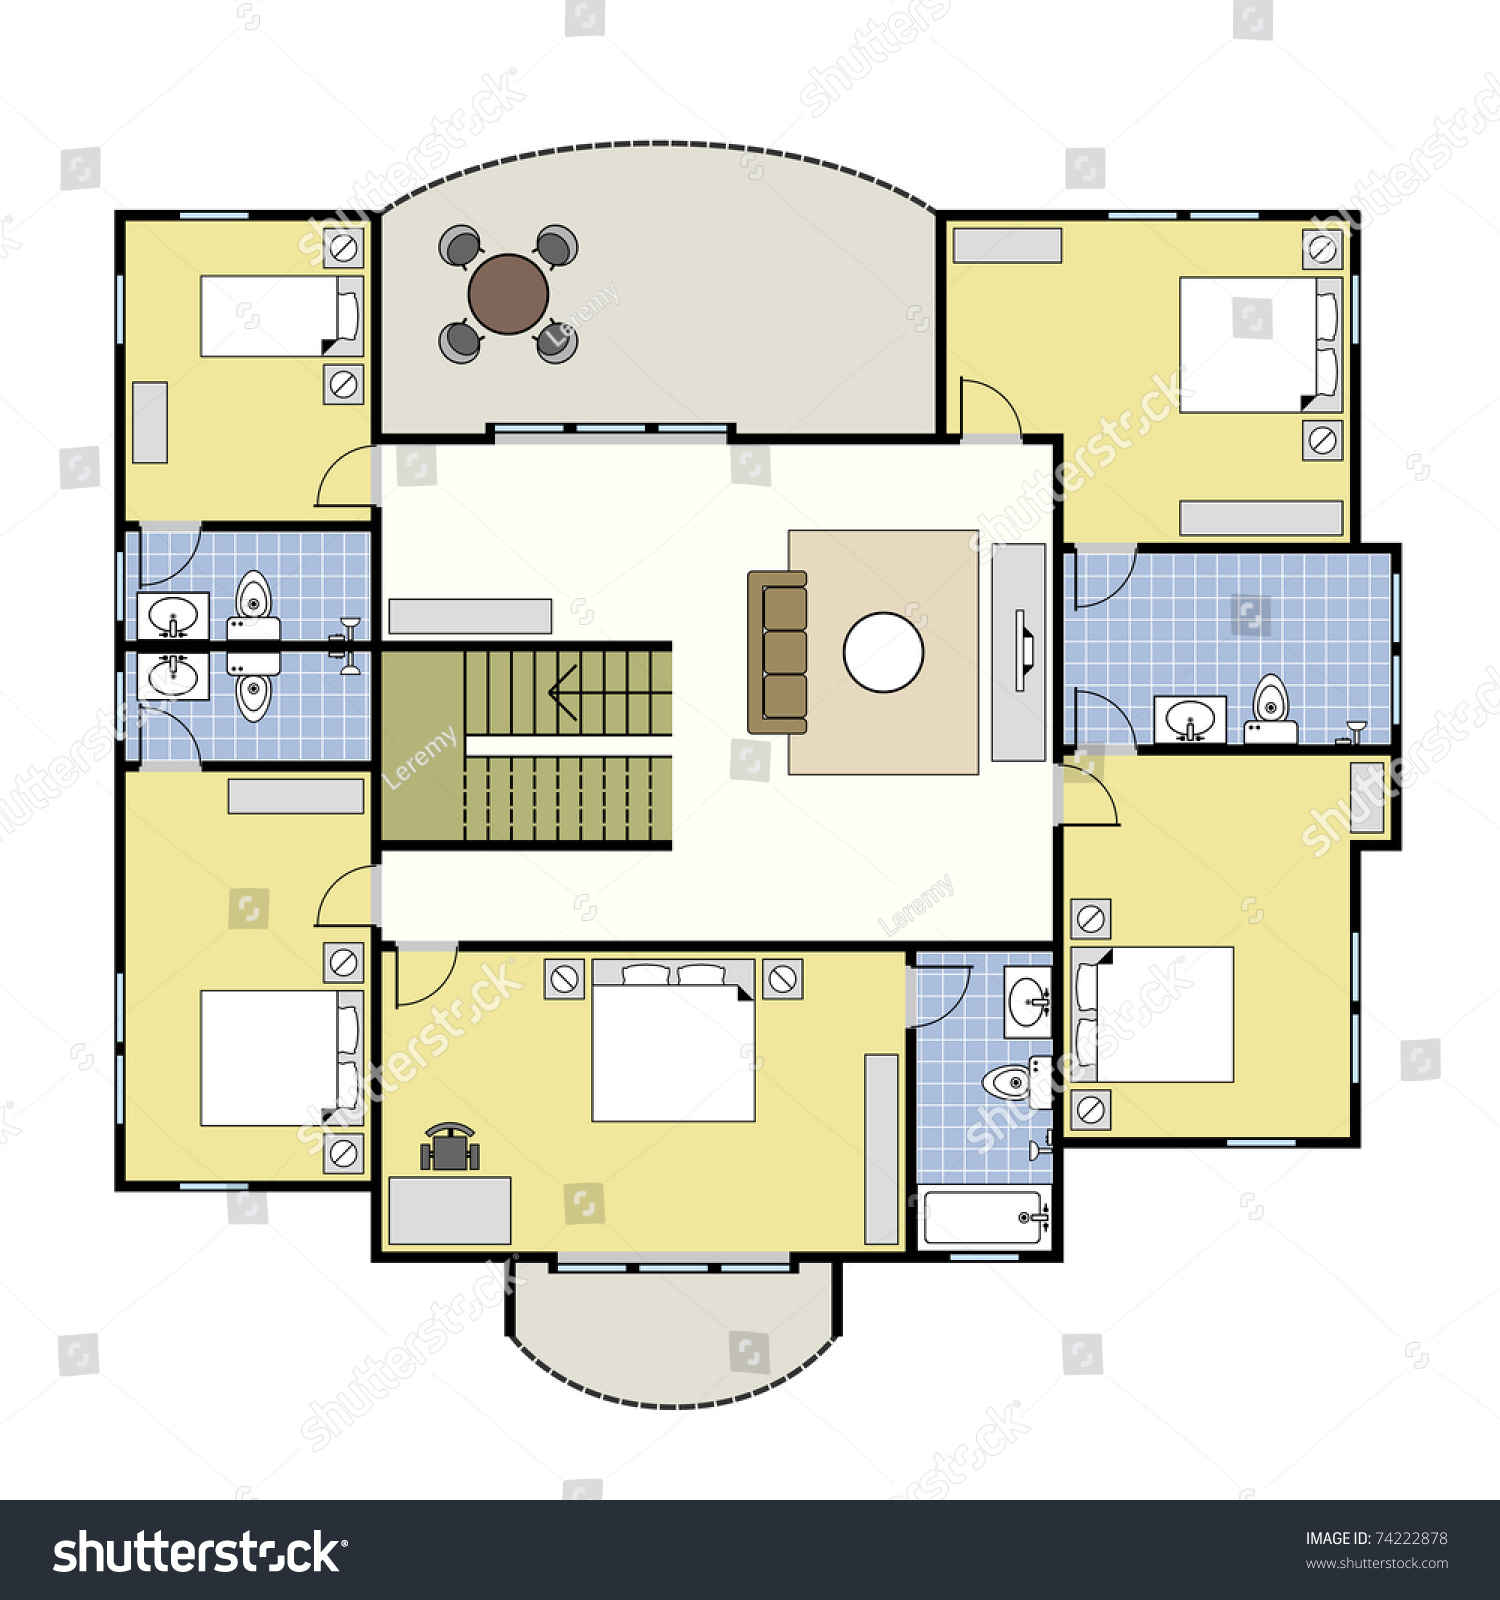 Surprising First Second Floor Plan Floorplan House Stock Vector 74222878 Largest Home Design Picture Inspirations Pitcheantrous